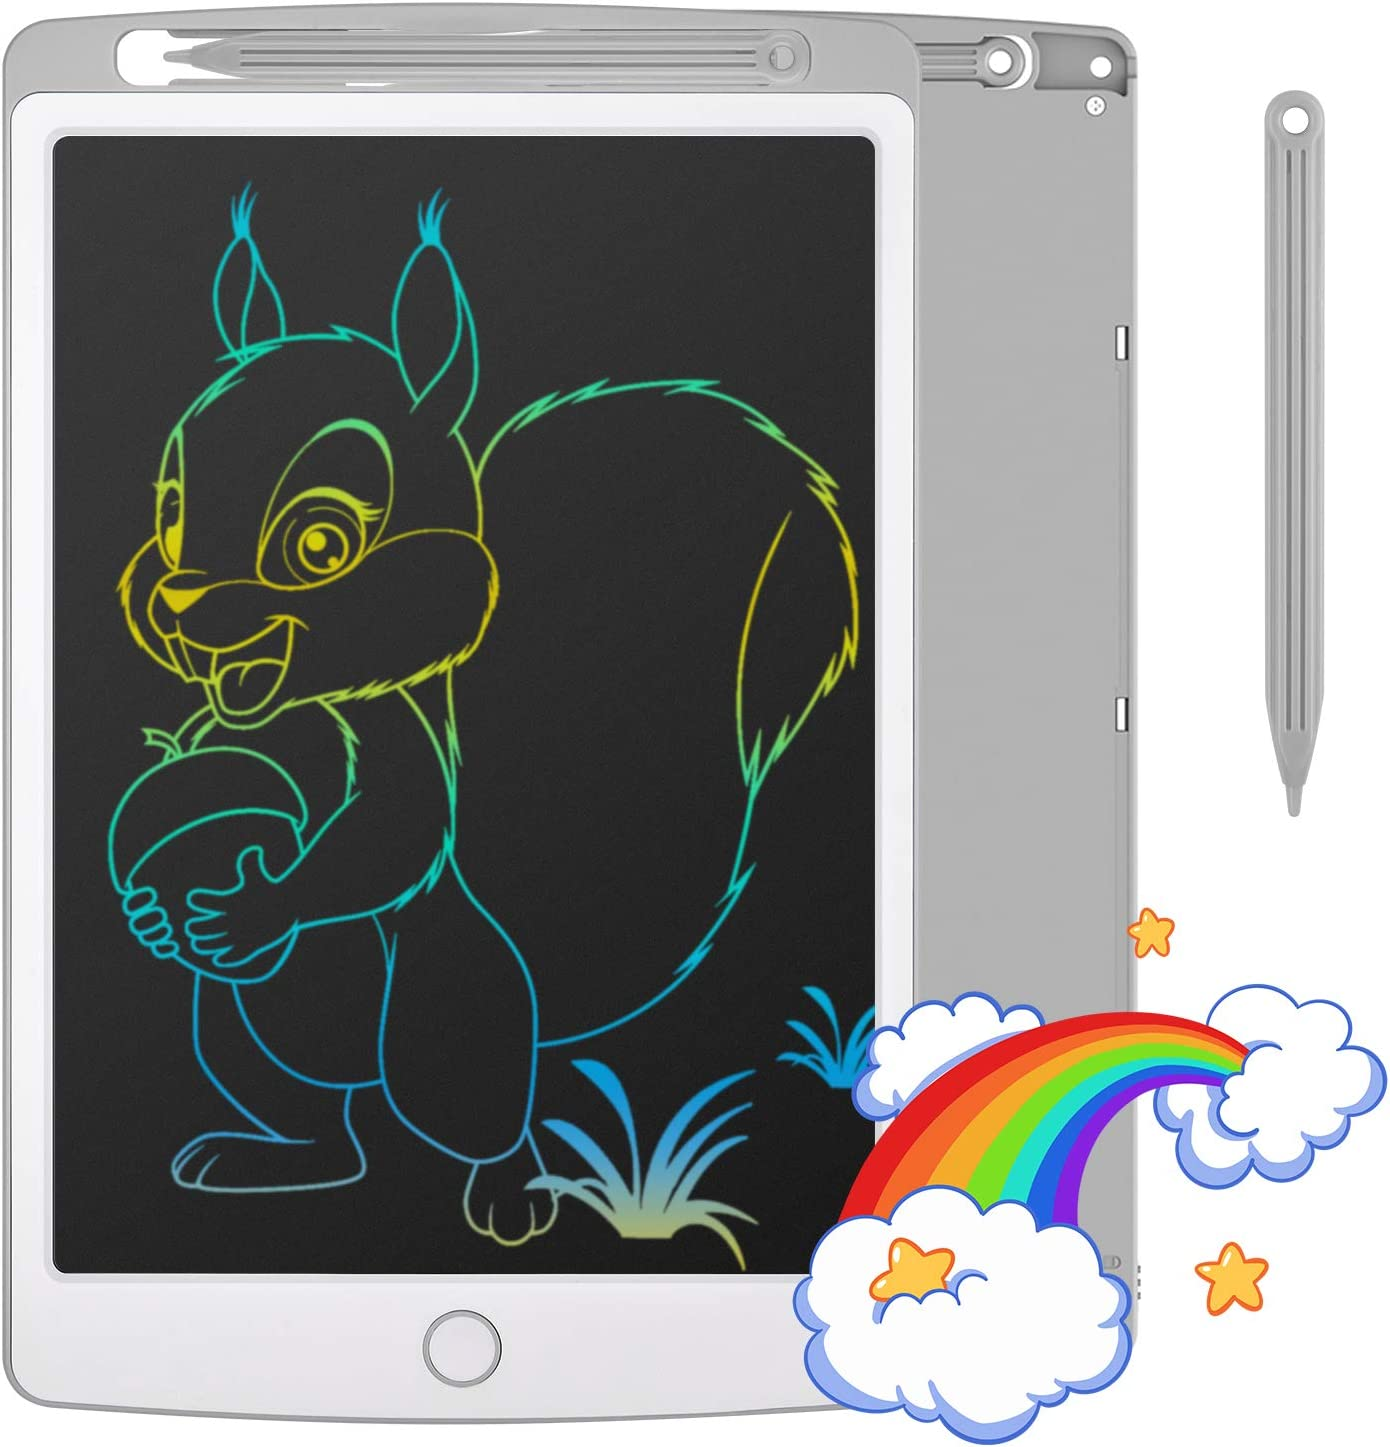 TECBOSS LCD Writing Tablet, Newest Colorful Screen with Lock Function Erasable Doodle Board Electronic Digital Drawing Pad, Toys Gifts for Kids Adults Home School Office (Gray, 10 in)